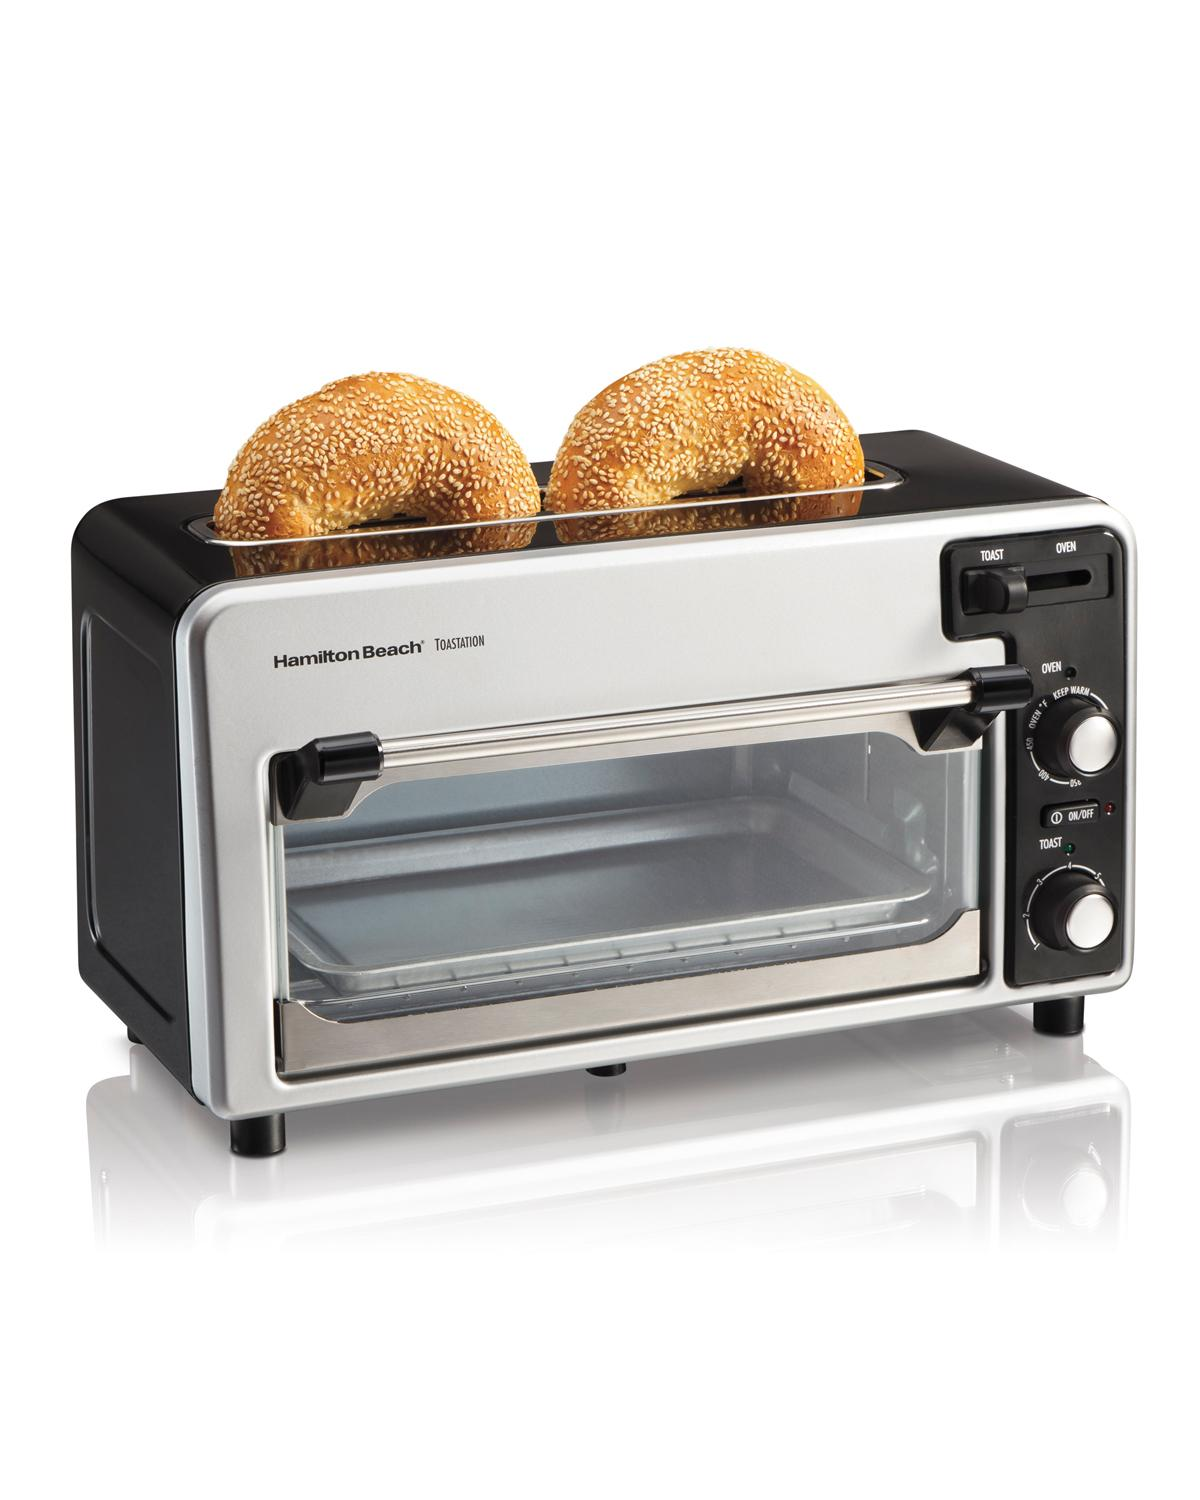 amazoncom hamilton beach  toastation toaster oven kitchen  - view larger